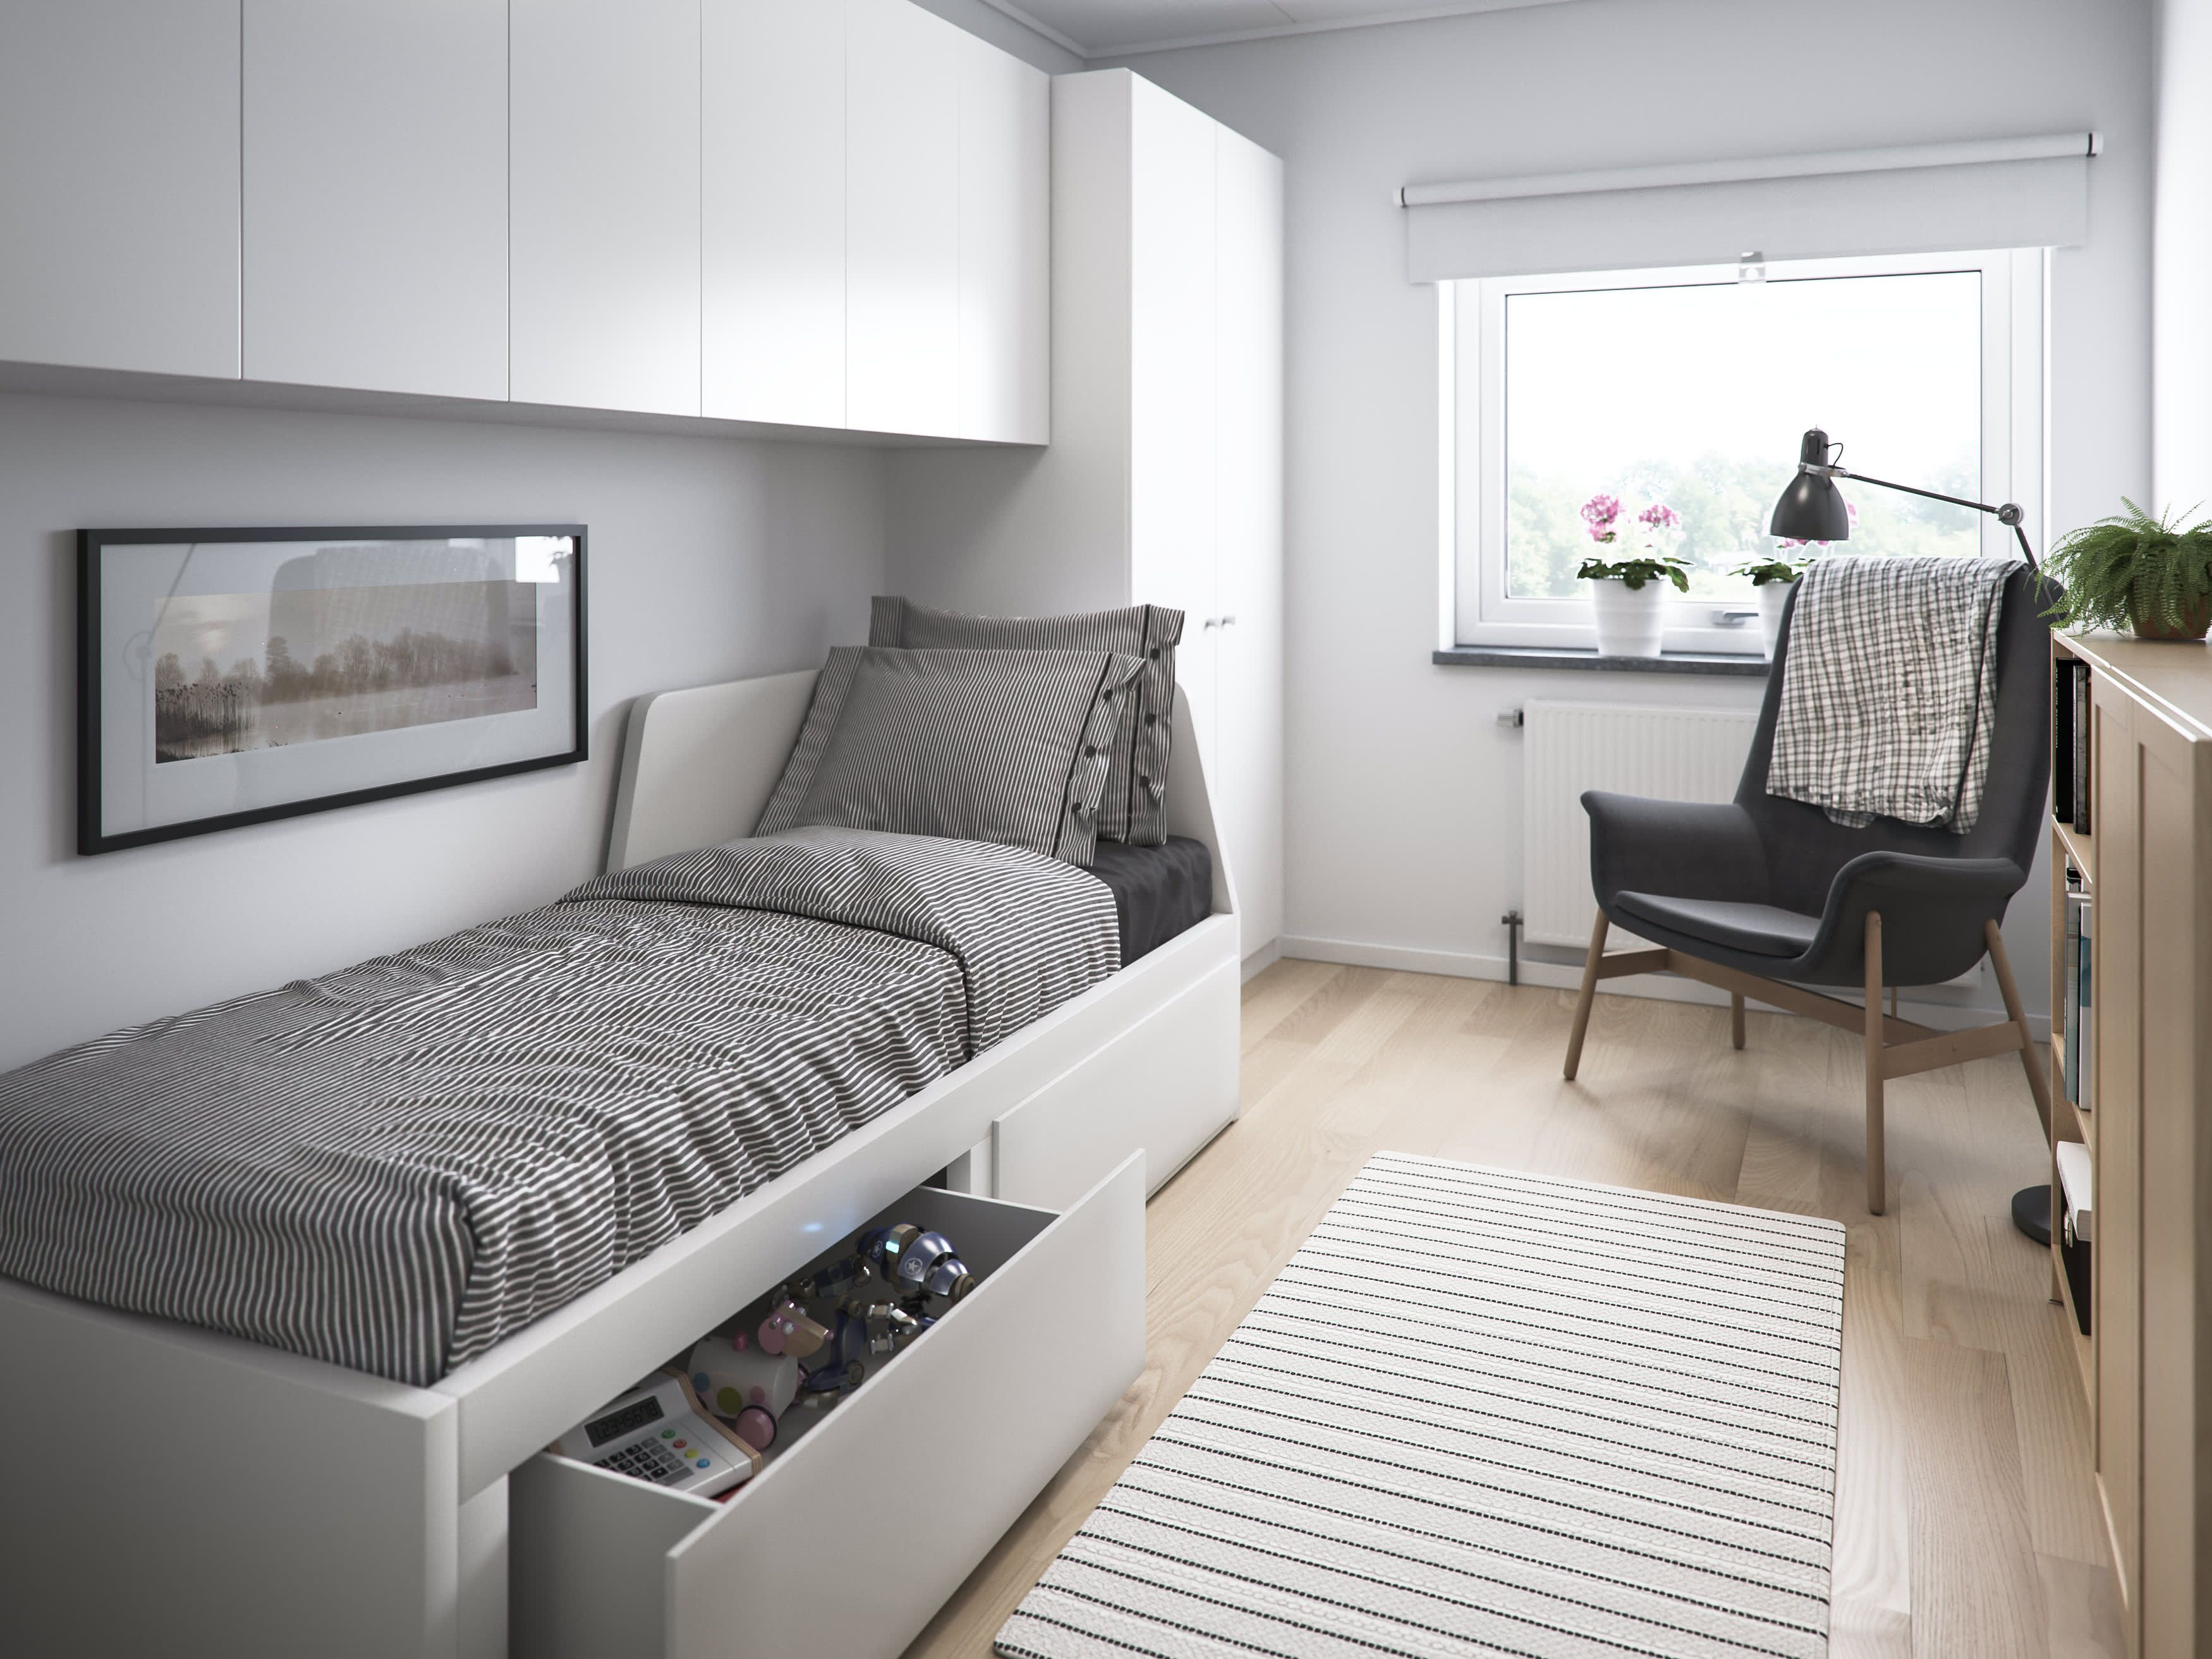 Ikea Is Designing Prefab Homes So That People With Dementia Can Be More Independent Prefab Homes Queen Of Sweden Co Housing